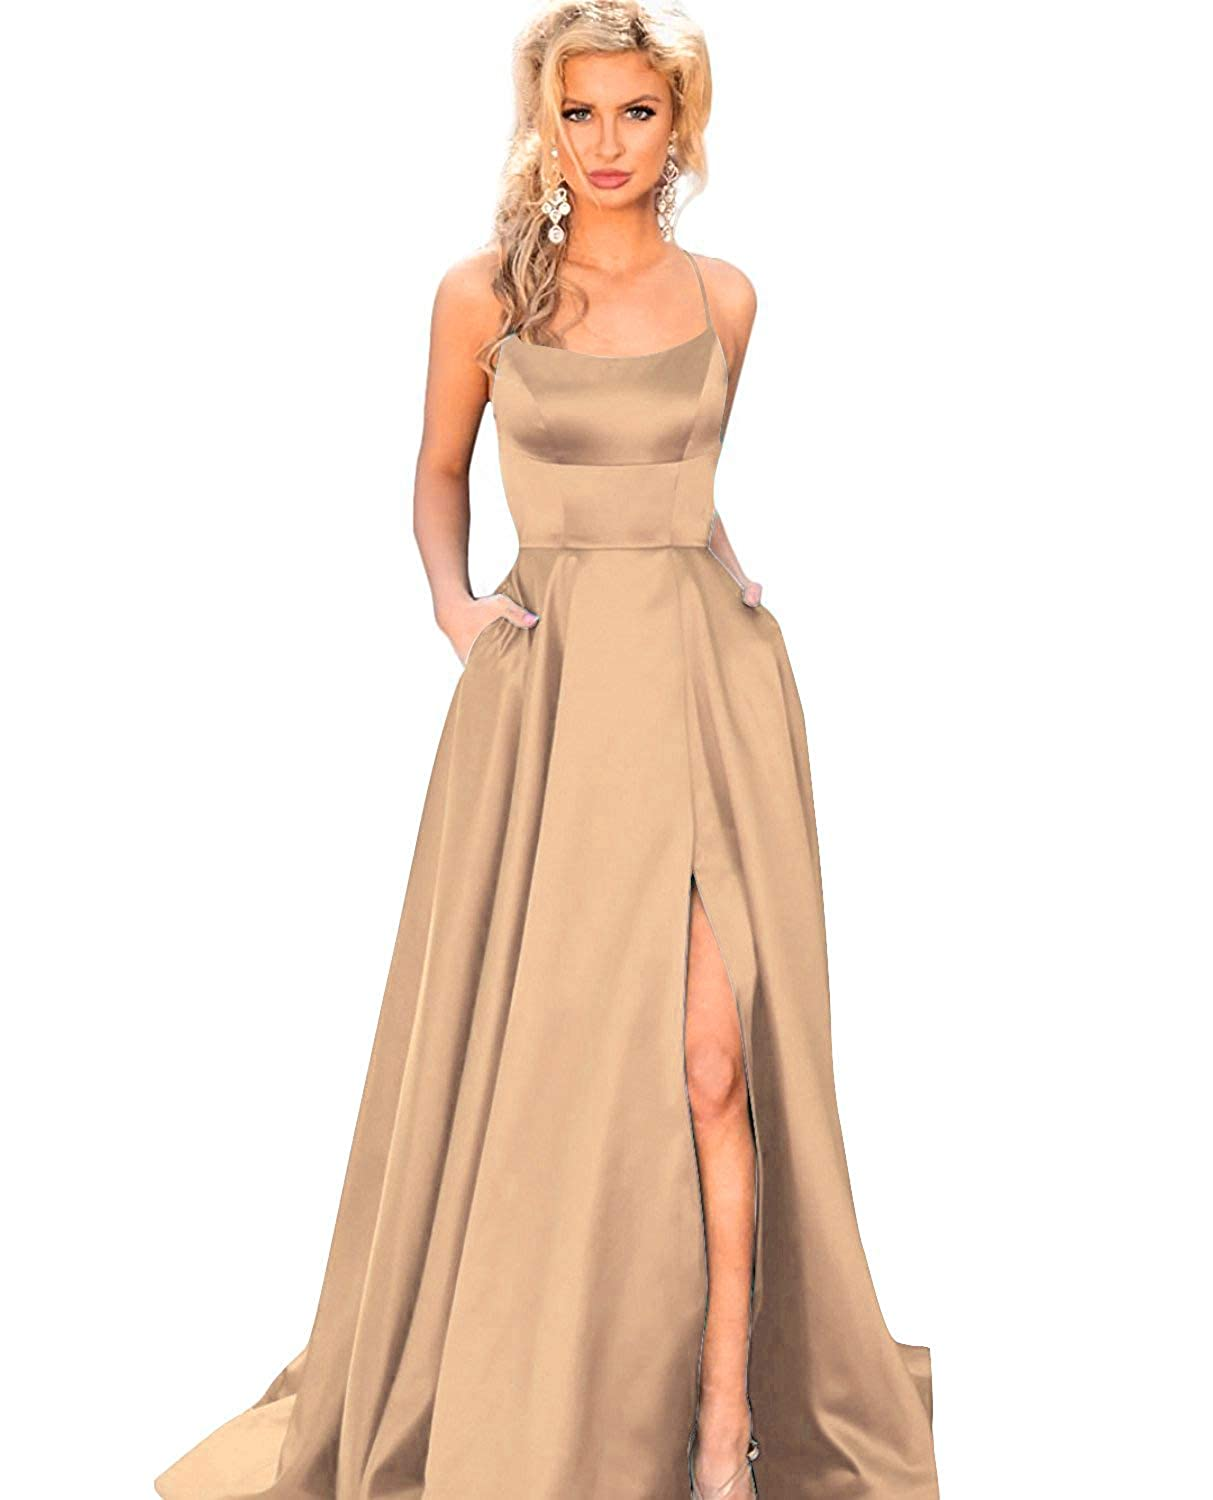 Champagne YMSHA Womens Long Halter Split Prom Party Dresses with Pockets Spaghetti Straps Evening Formal Gown PM10